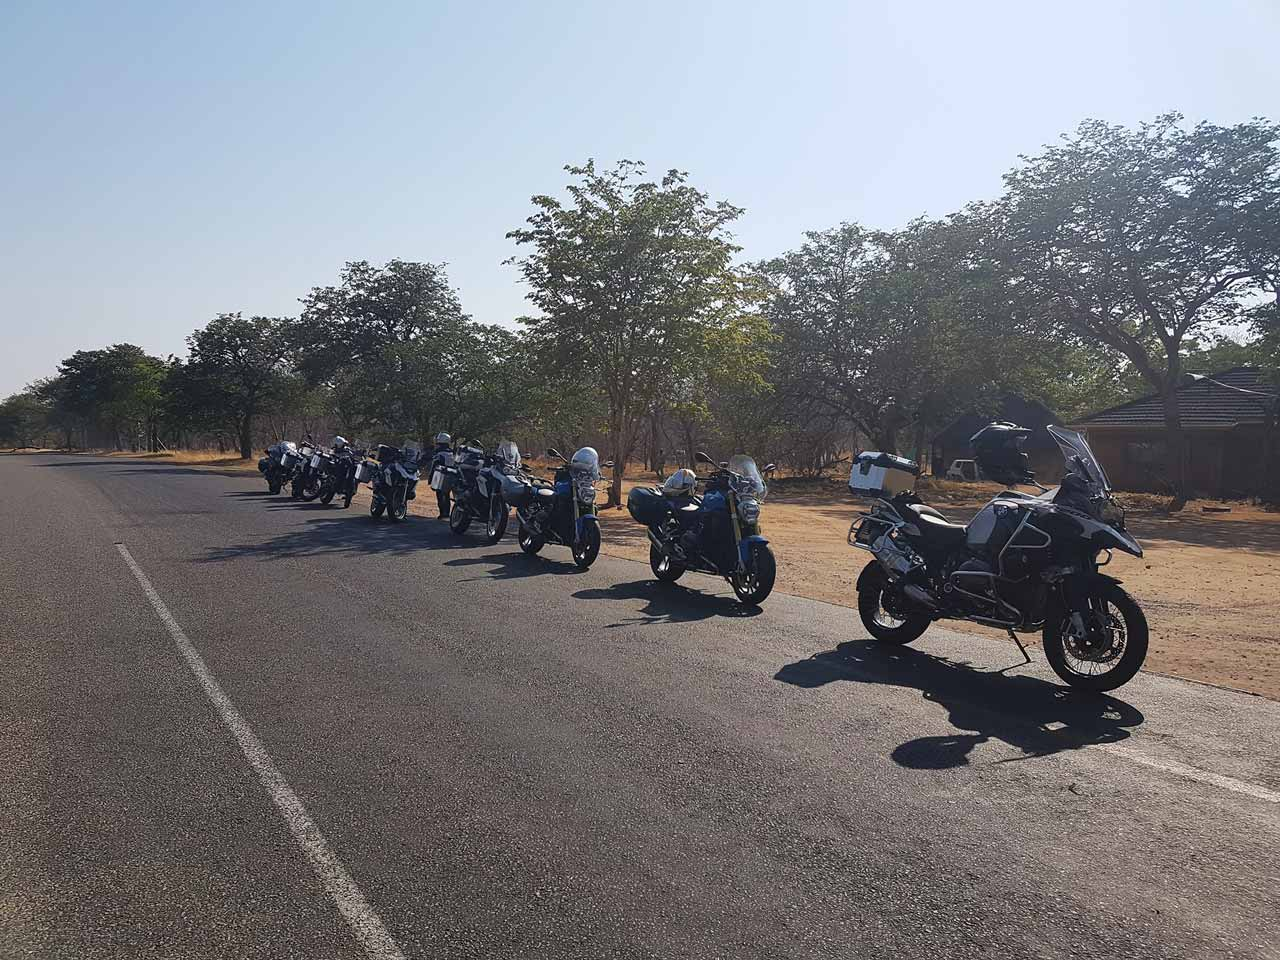 Day 8 - Call of the Wild Motorcycle Tour